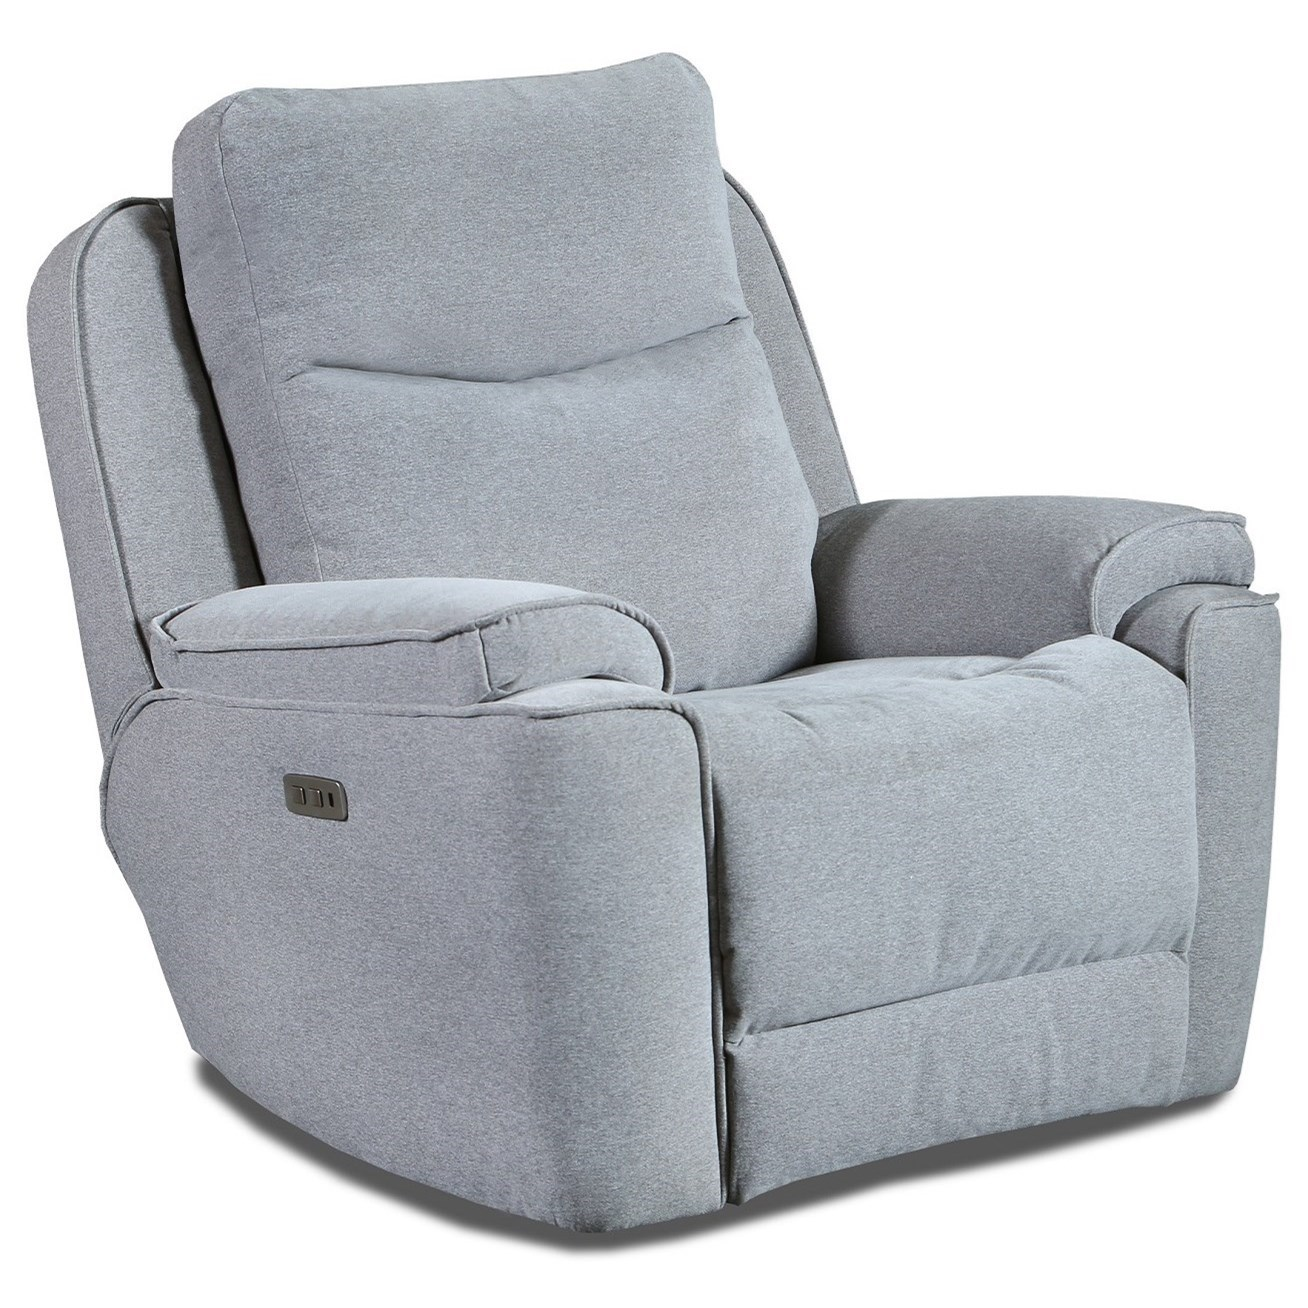 Show Stopper Power Headrest WallHugger Recliner by Southern Motion at Furniture and ApplianceMart